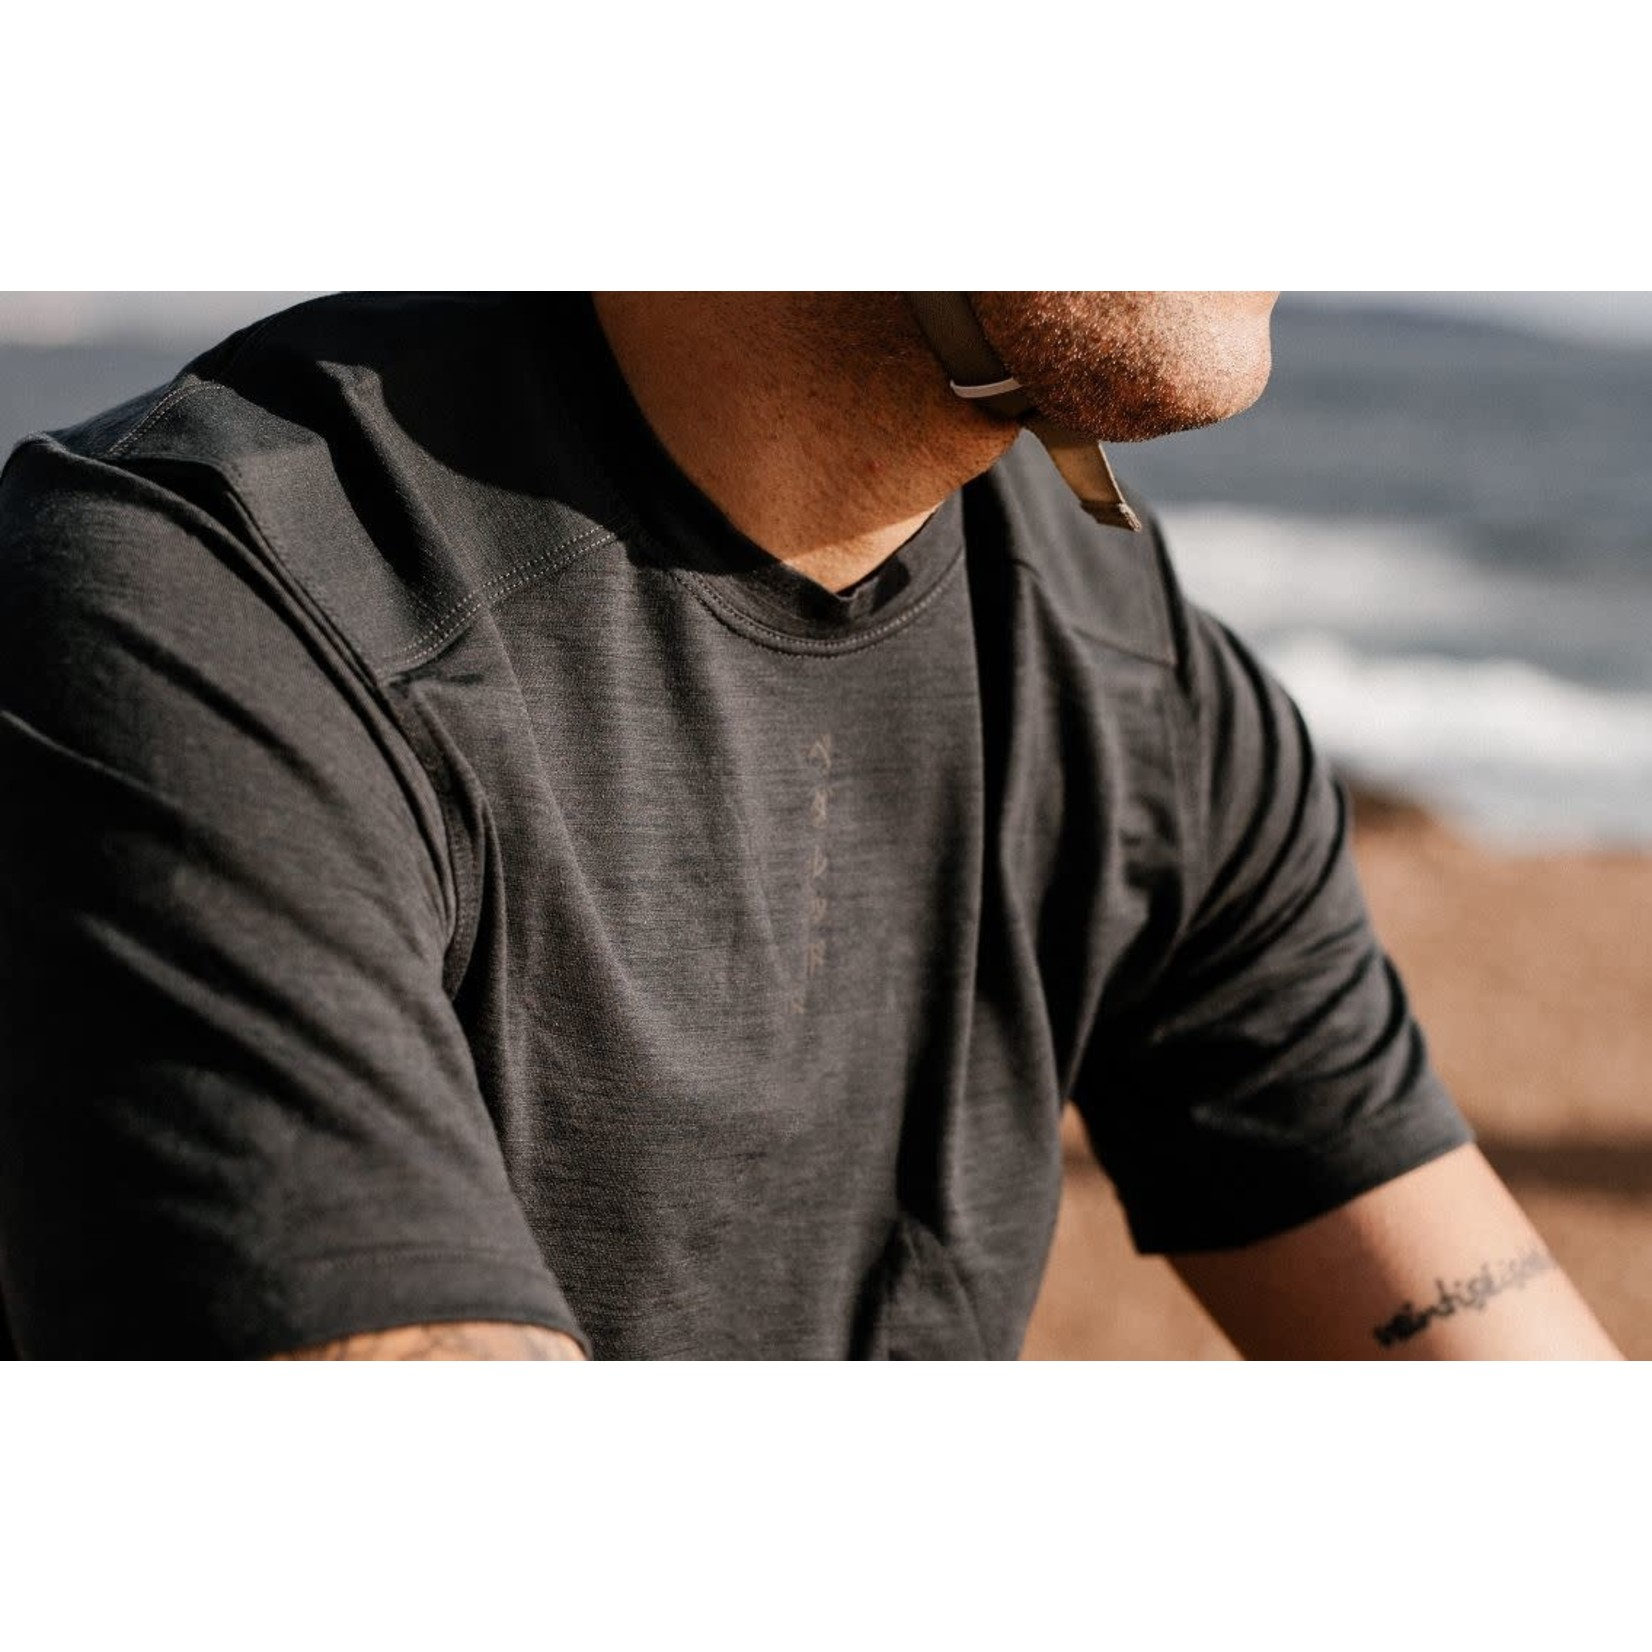 PEdALED PEdALED Jary Tee L charcoal grey